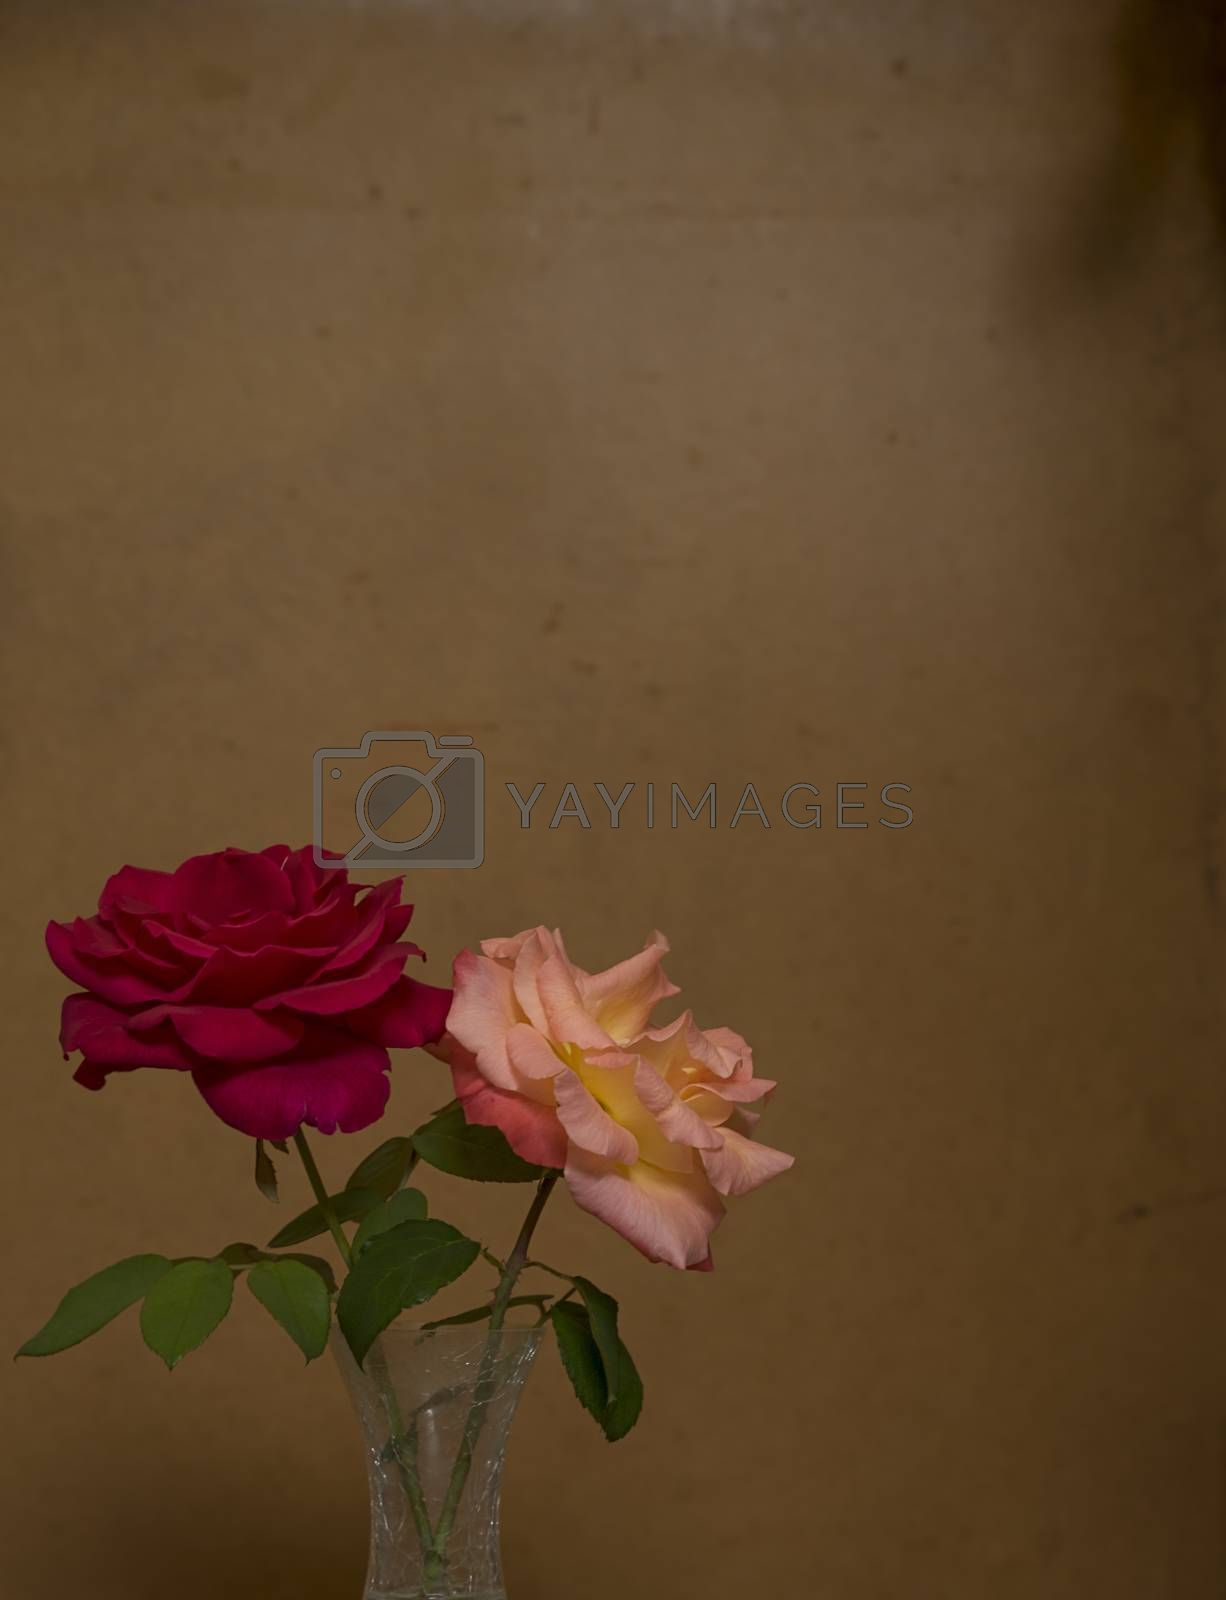 Two 2 Rose flowers against old dark grunge stained dirty backdrop background with copy-space